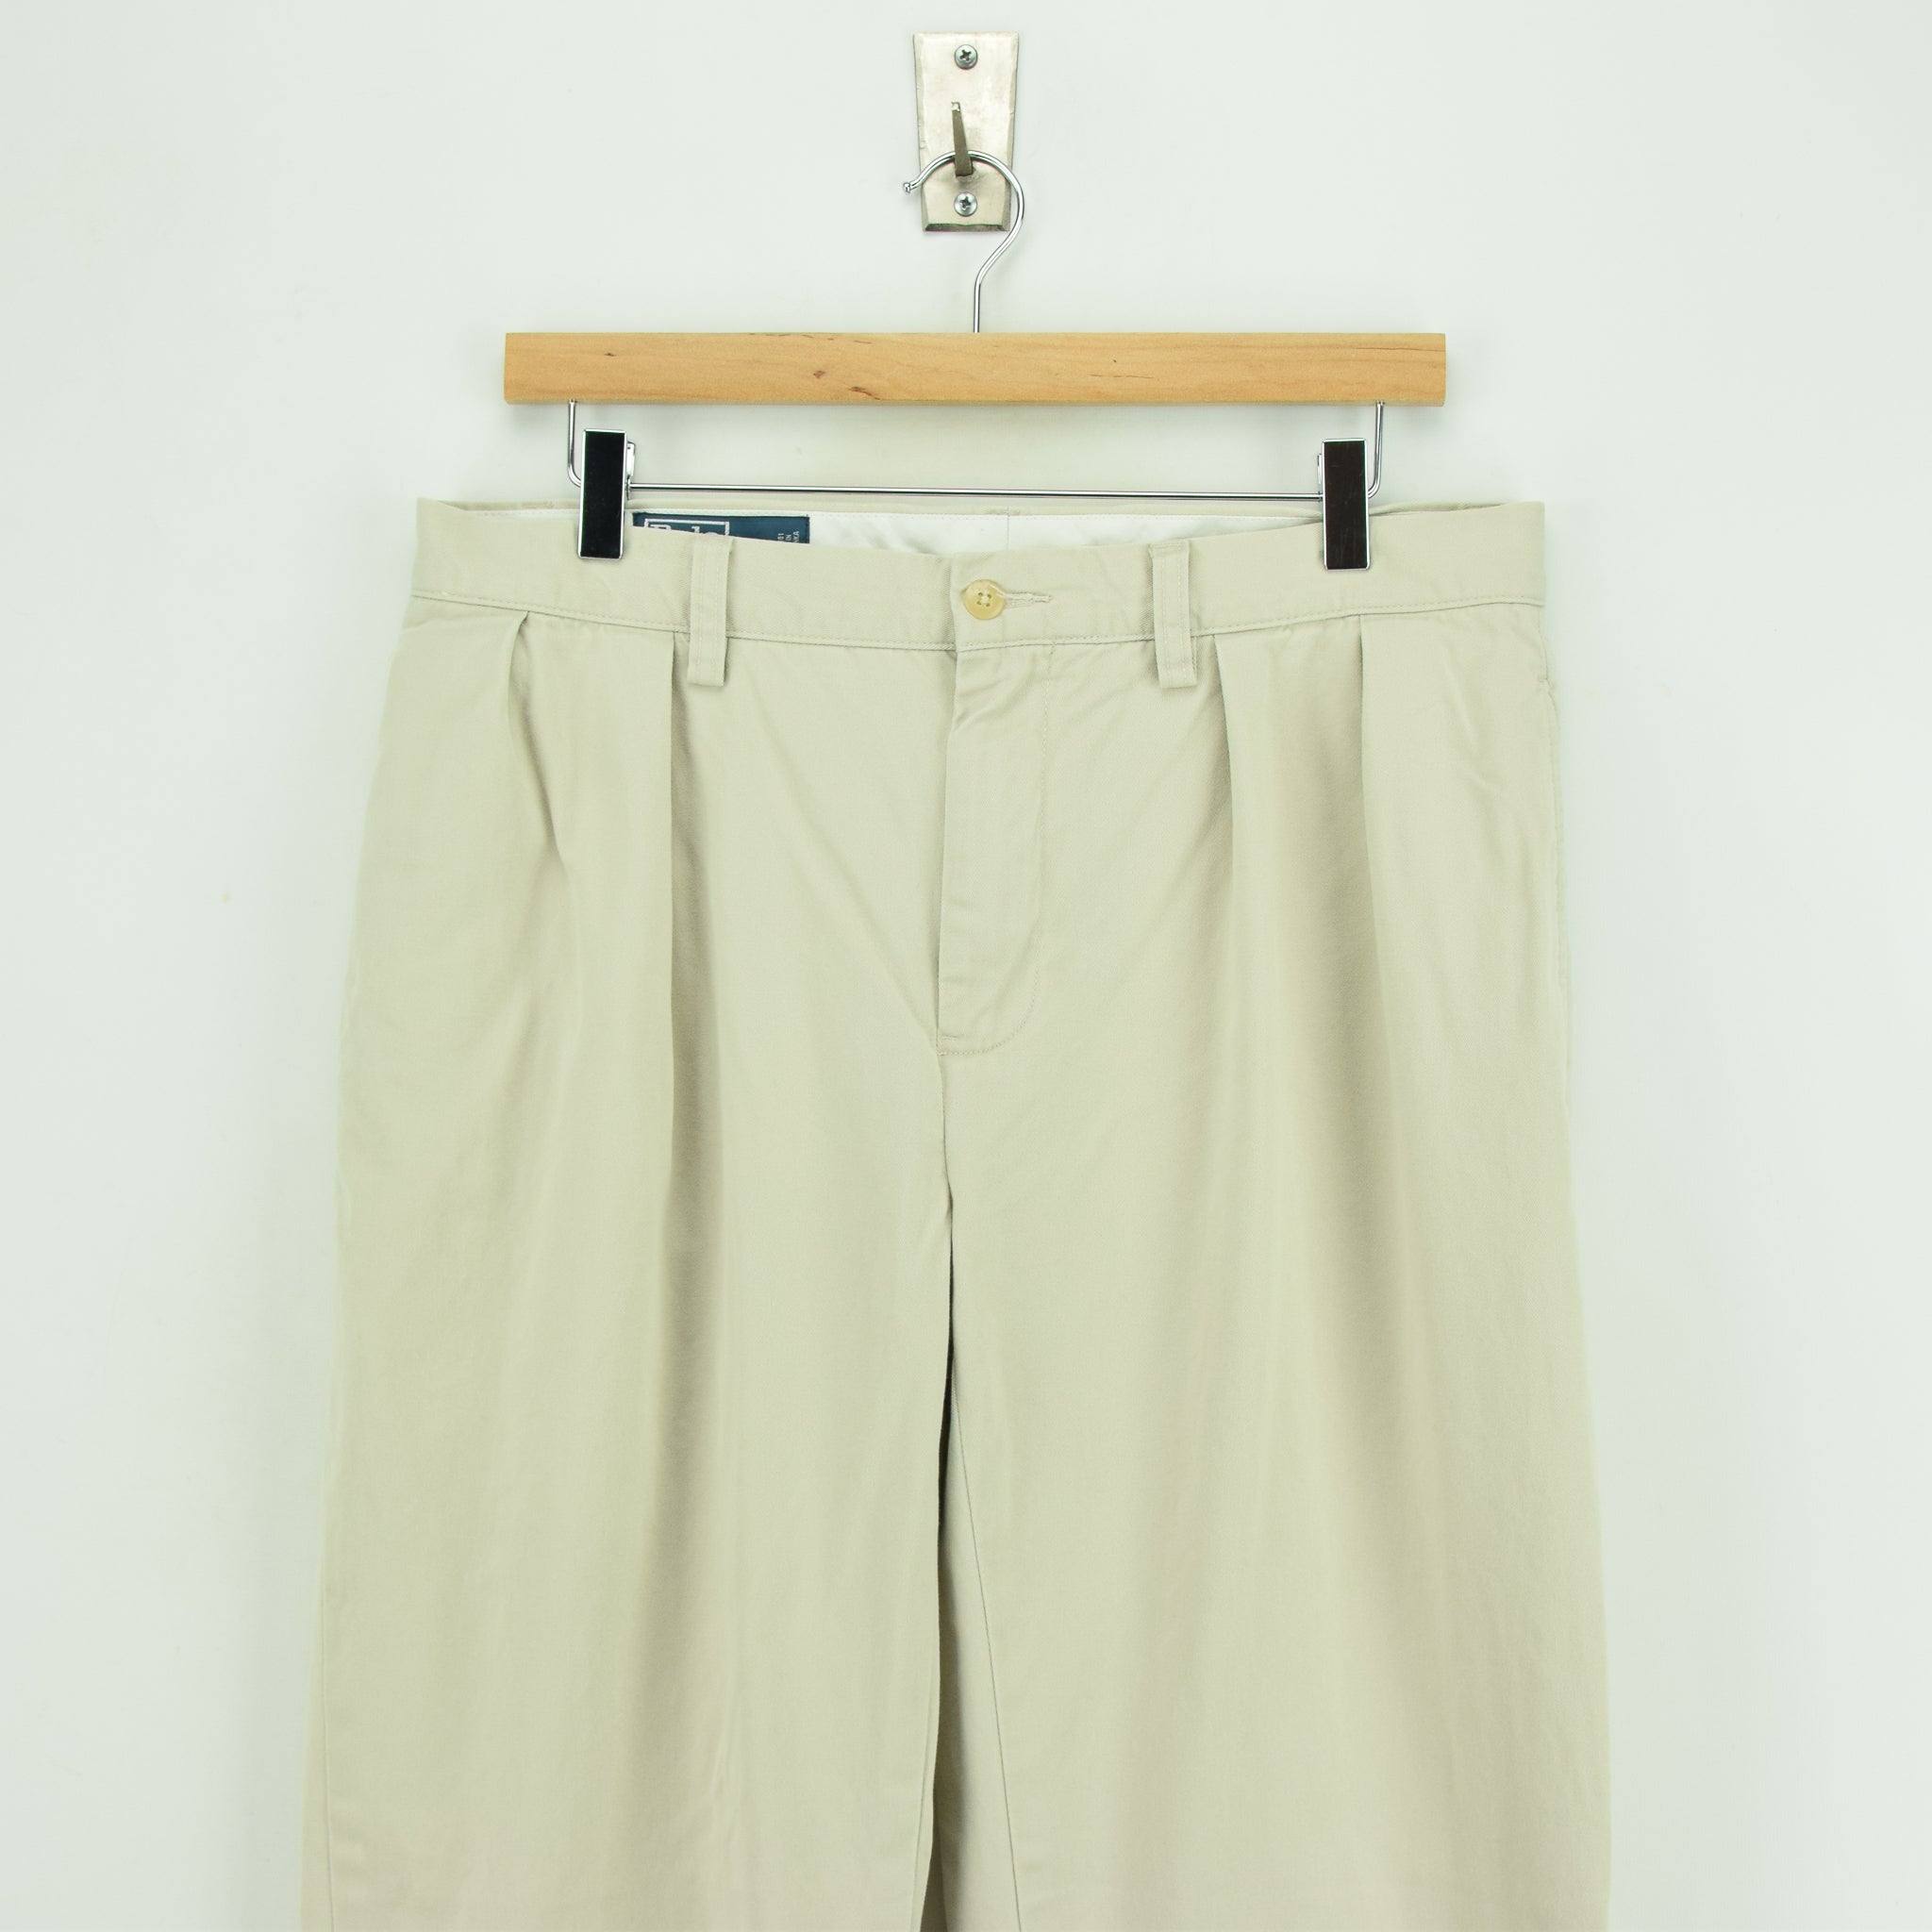 Vintage Ralph Lauren Polo Ethan Pant Chinos Pleated Front Trousers 32 W 28 L front waist